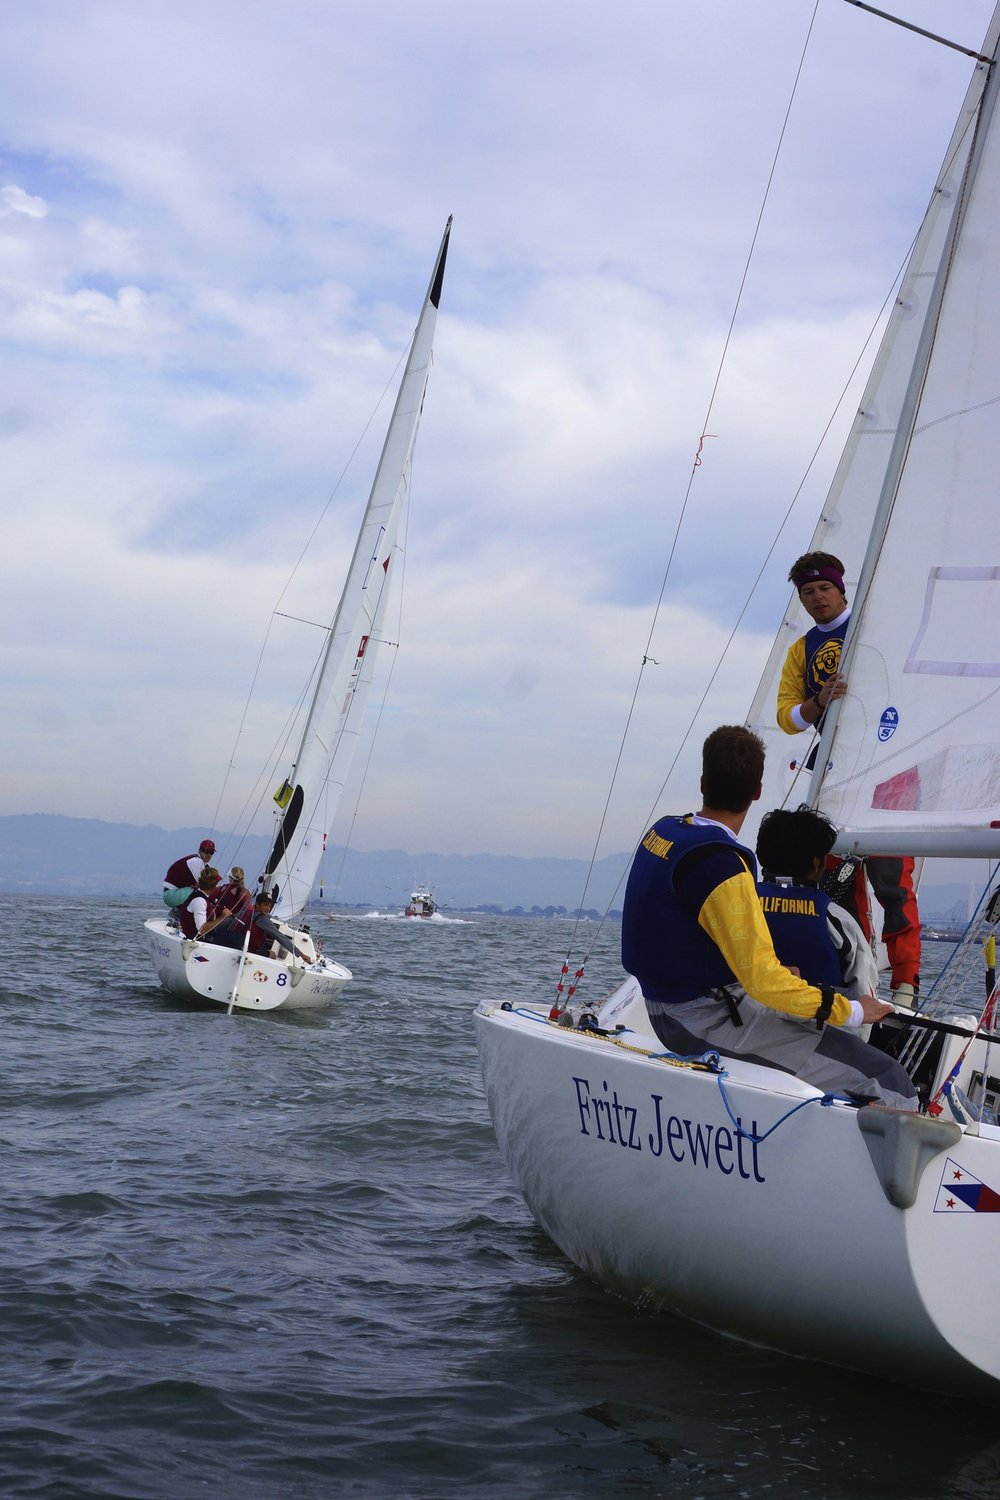 The Big Sail is an annual fall regatta, in which three boats each from Stanford and UC Berkeley compete against each other in a series of team and match races. This year, Stanford continued a decade-long tradition of winning this regatta, taking home the 2014 Big Sail trophy.